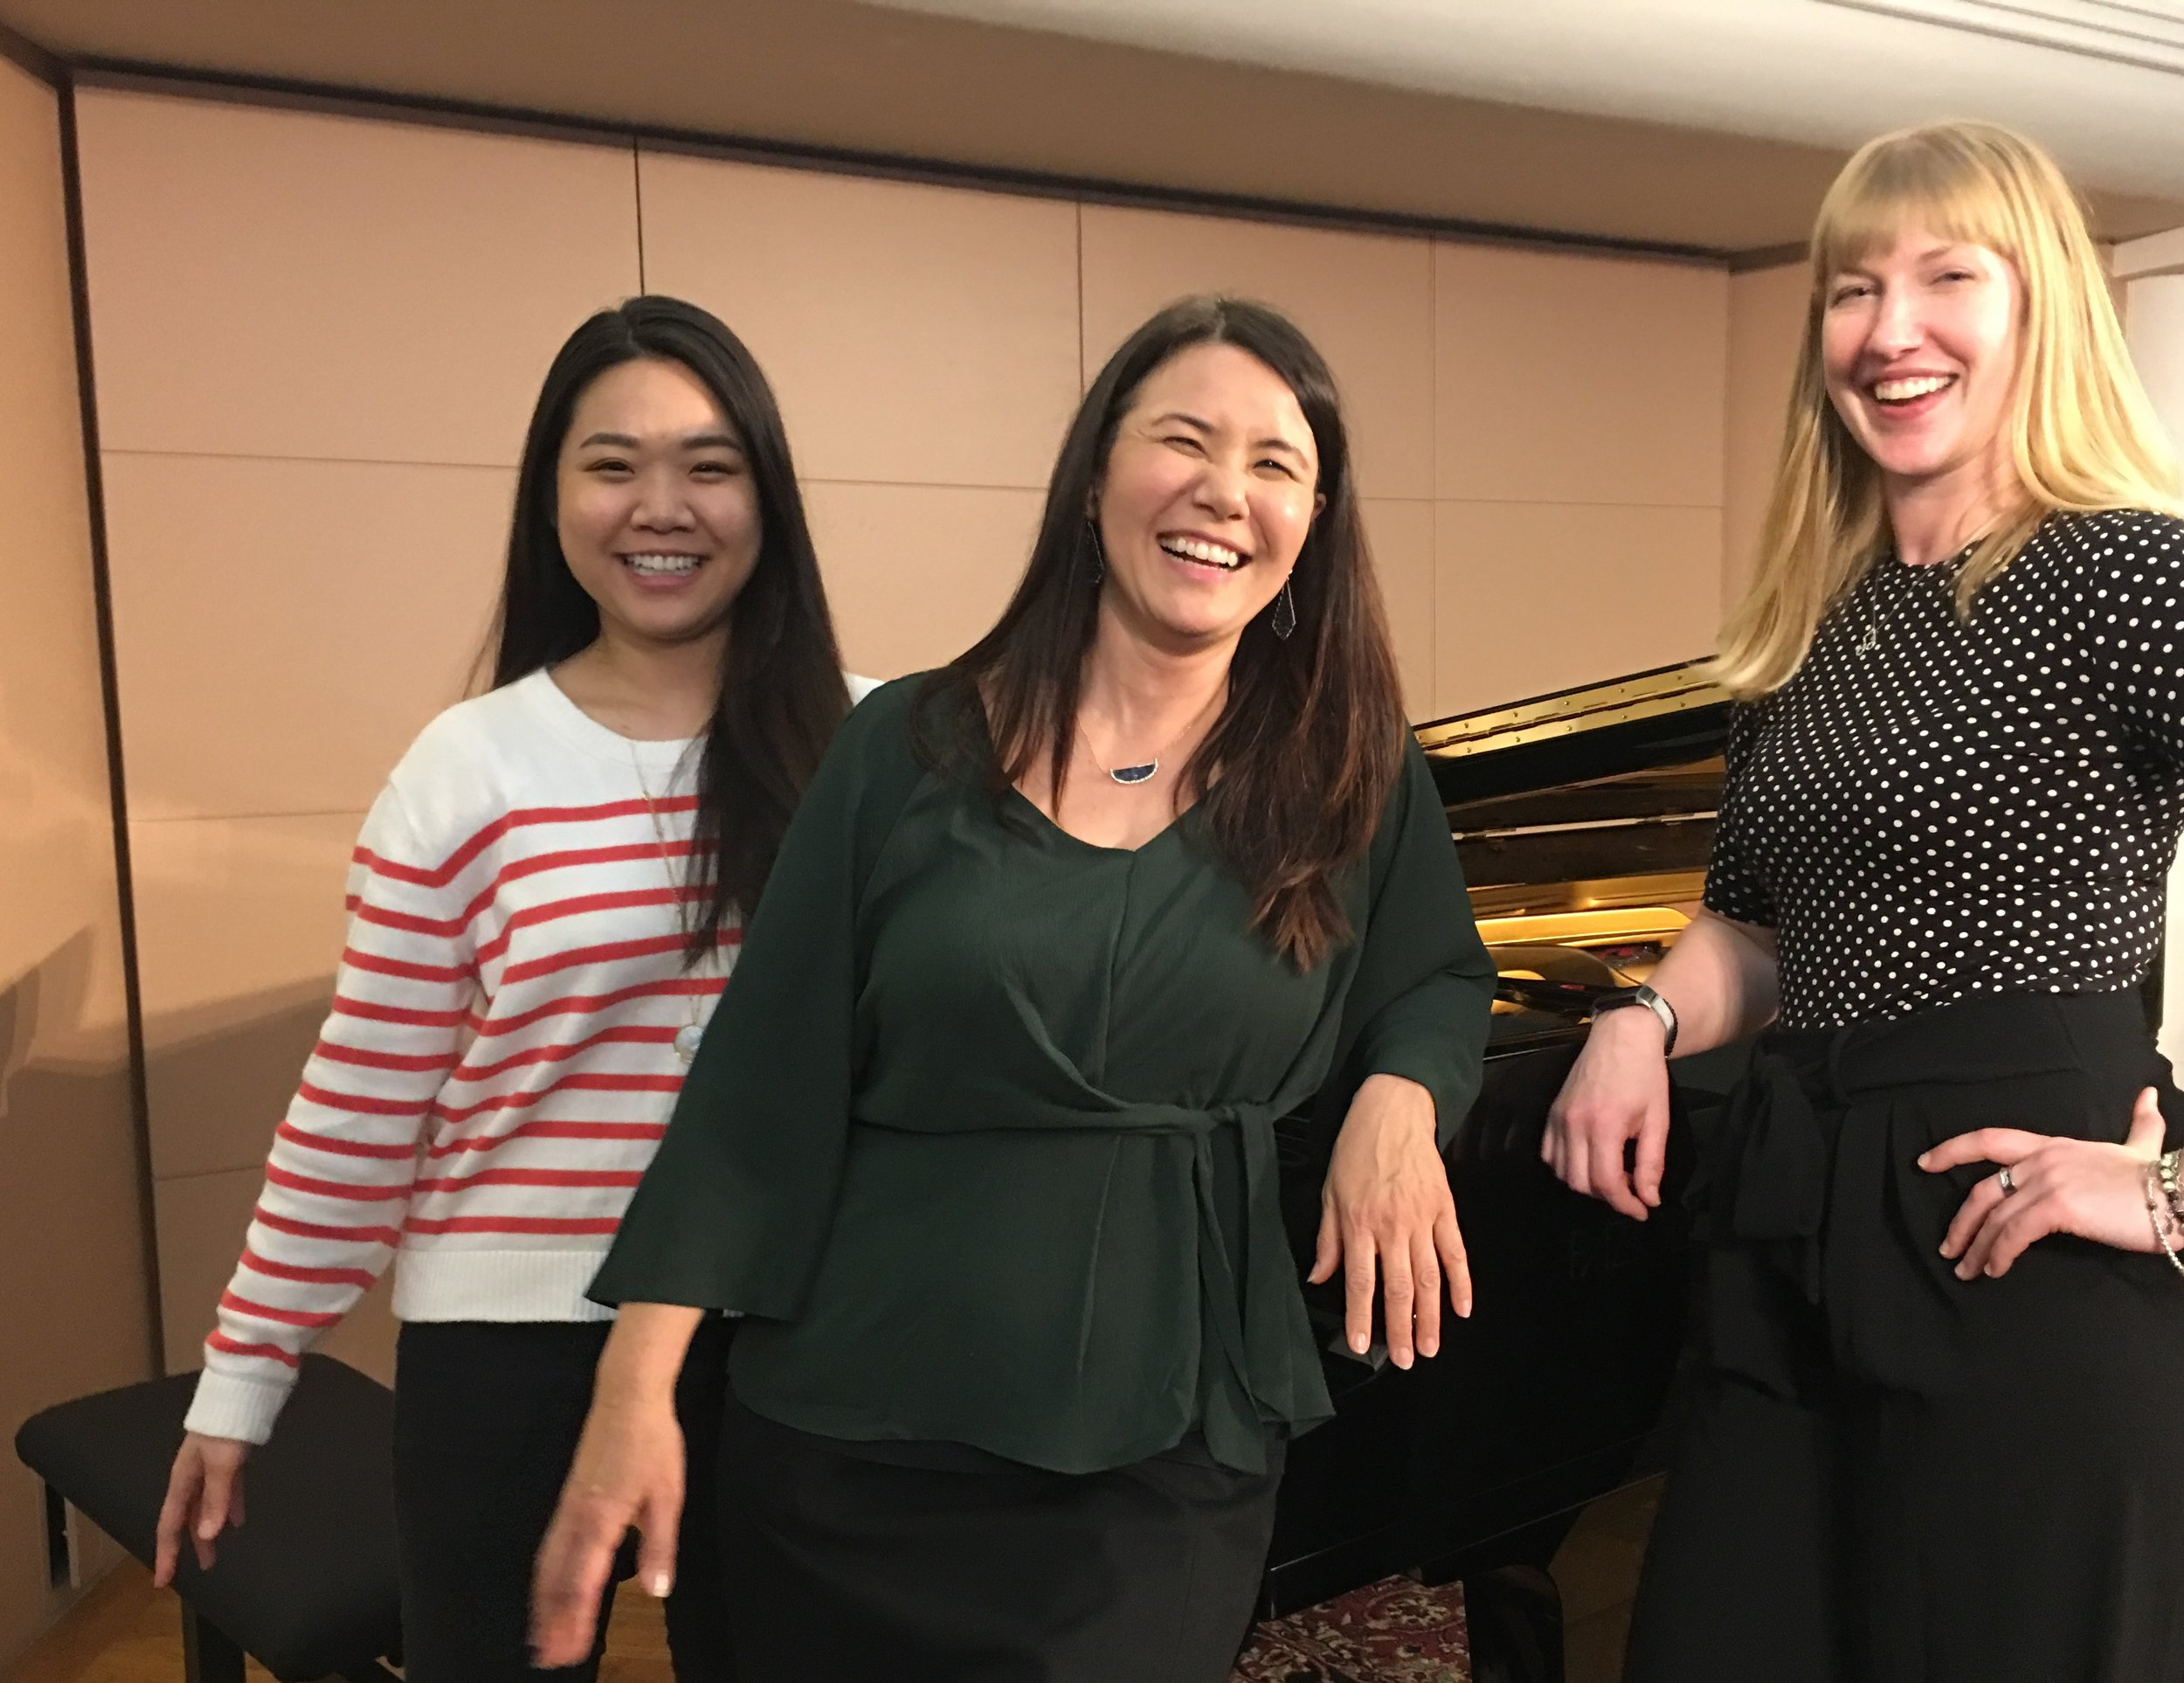 Our Joyful and Heartfelt Team! - We welcome you to Music for Therapy! Each of us has our unique path to the field of Music Therapy. Please enjoy reading about our training below.